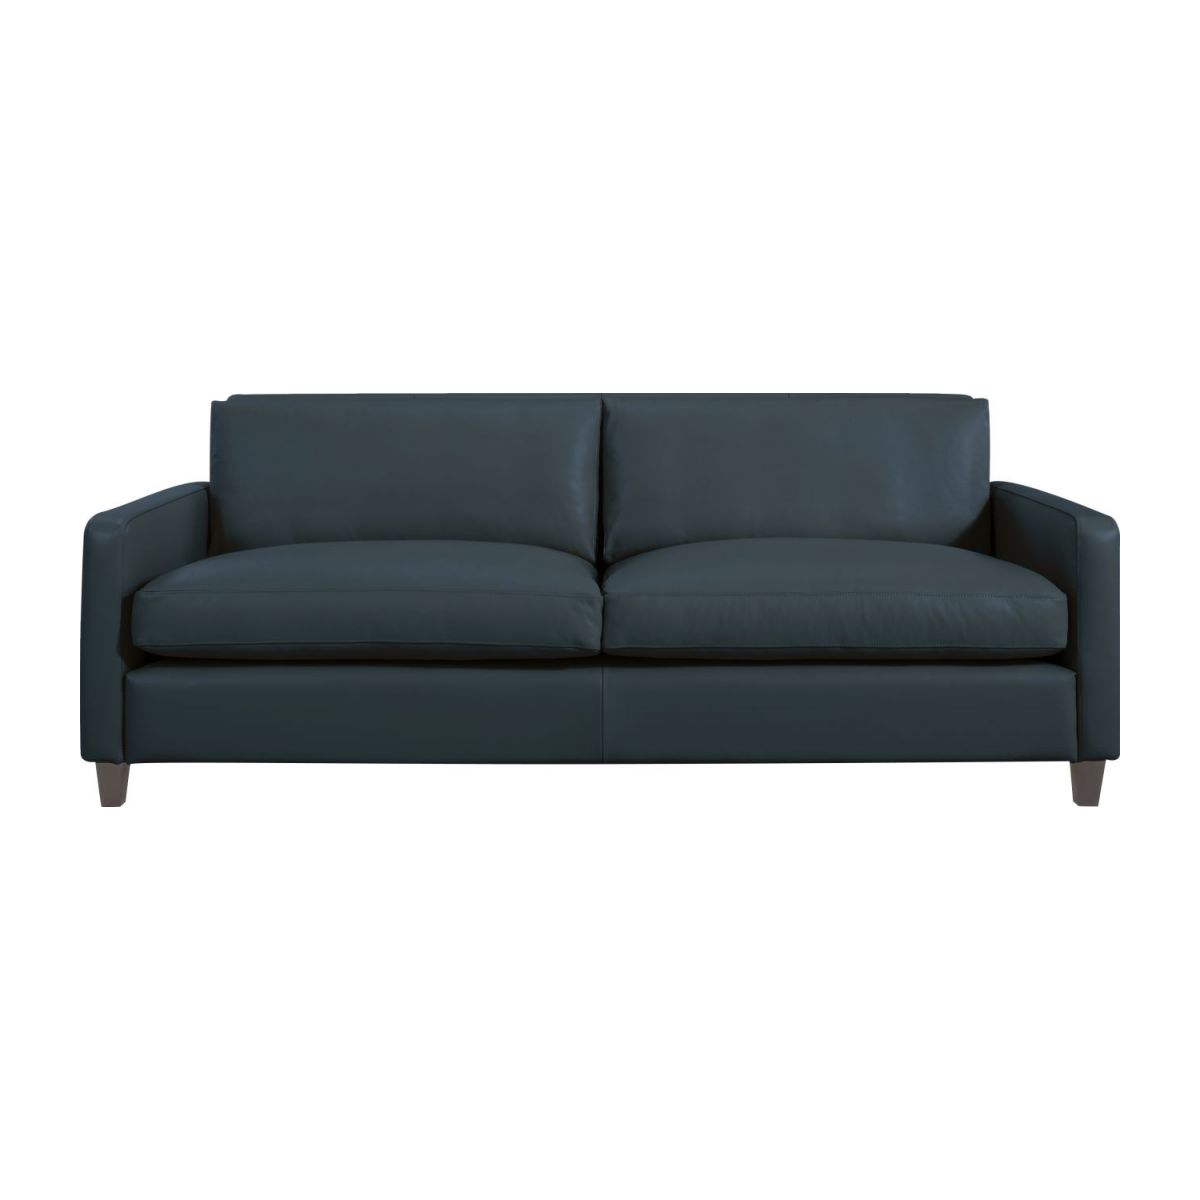 3 seat leather sofa n°3